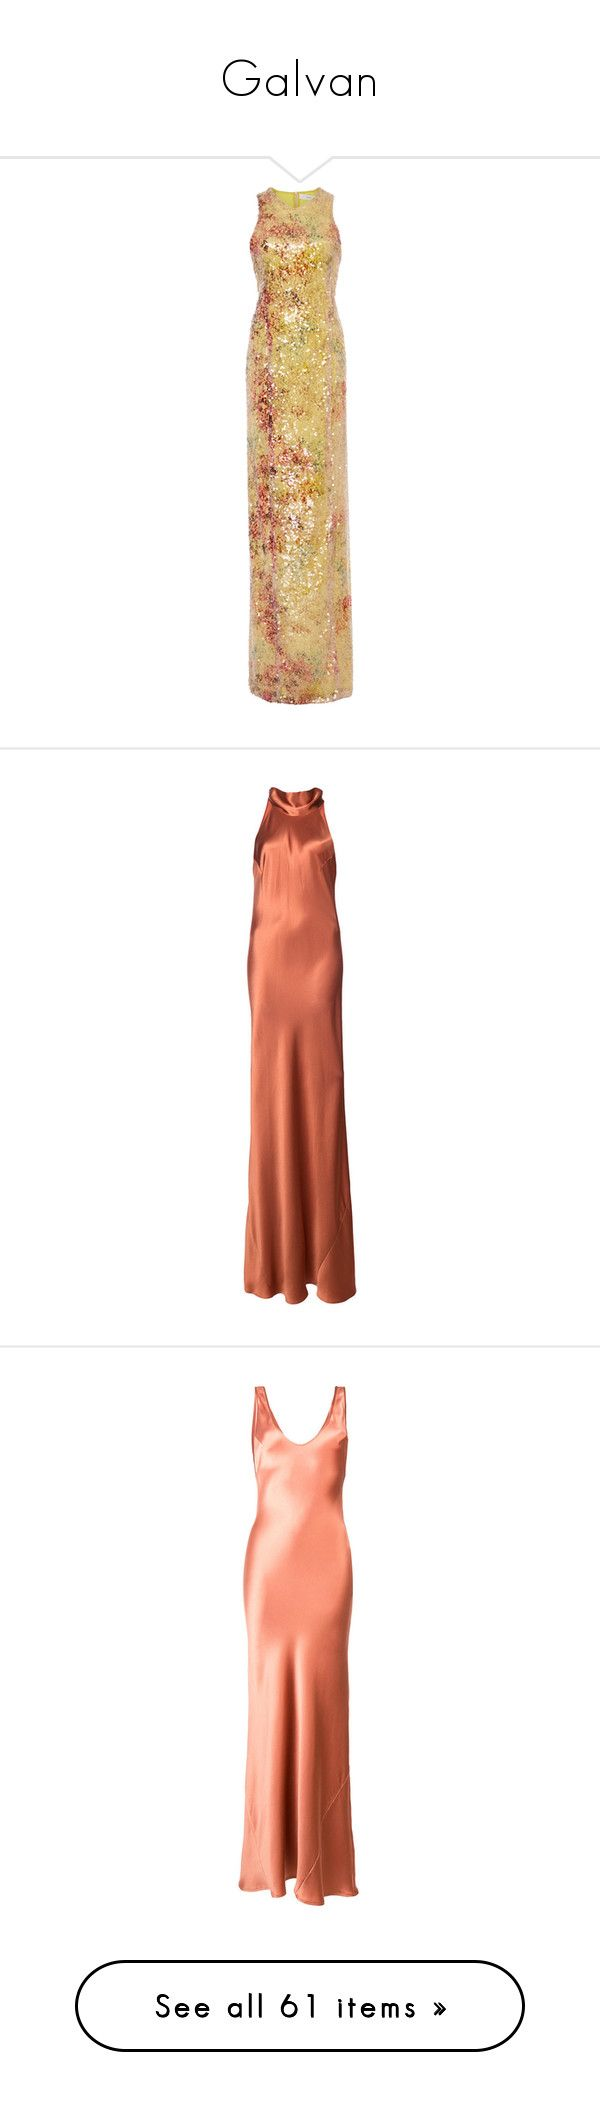 """""""Galvan"""" by maria24serban ❤ liked on Polyvore featuring dresses, multi, form fitted dresses, high neck dress, holiday party dresses, night out dresses, going out dresses, orange, neck-tie and silk dress"""